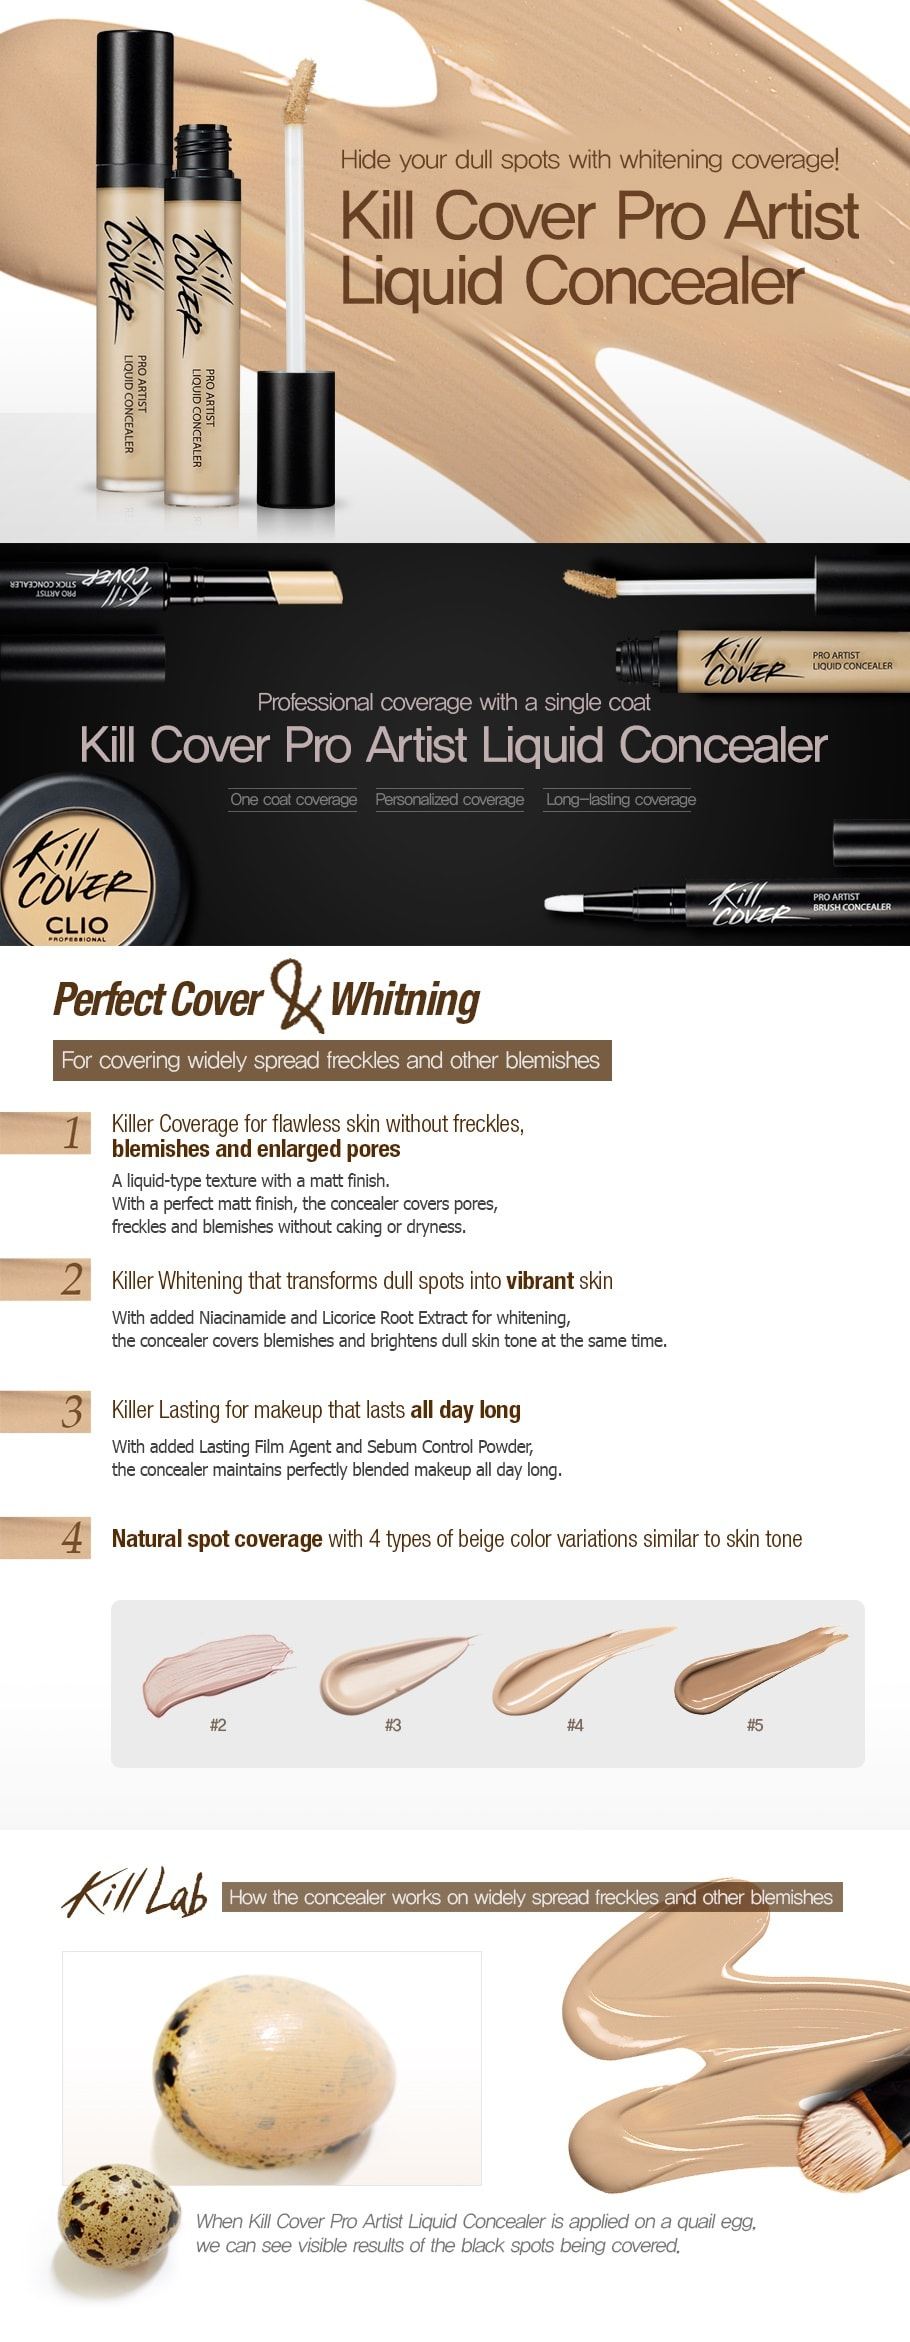 CLIO Kill Cover Pro Artist Liquid Concealer Special Set